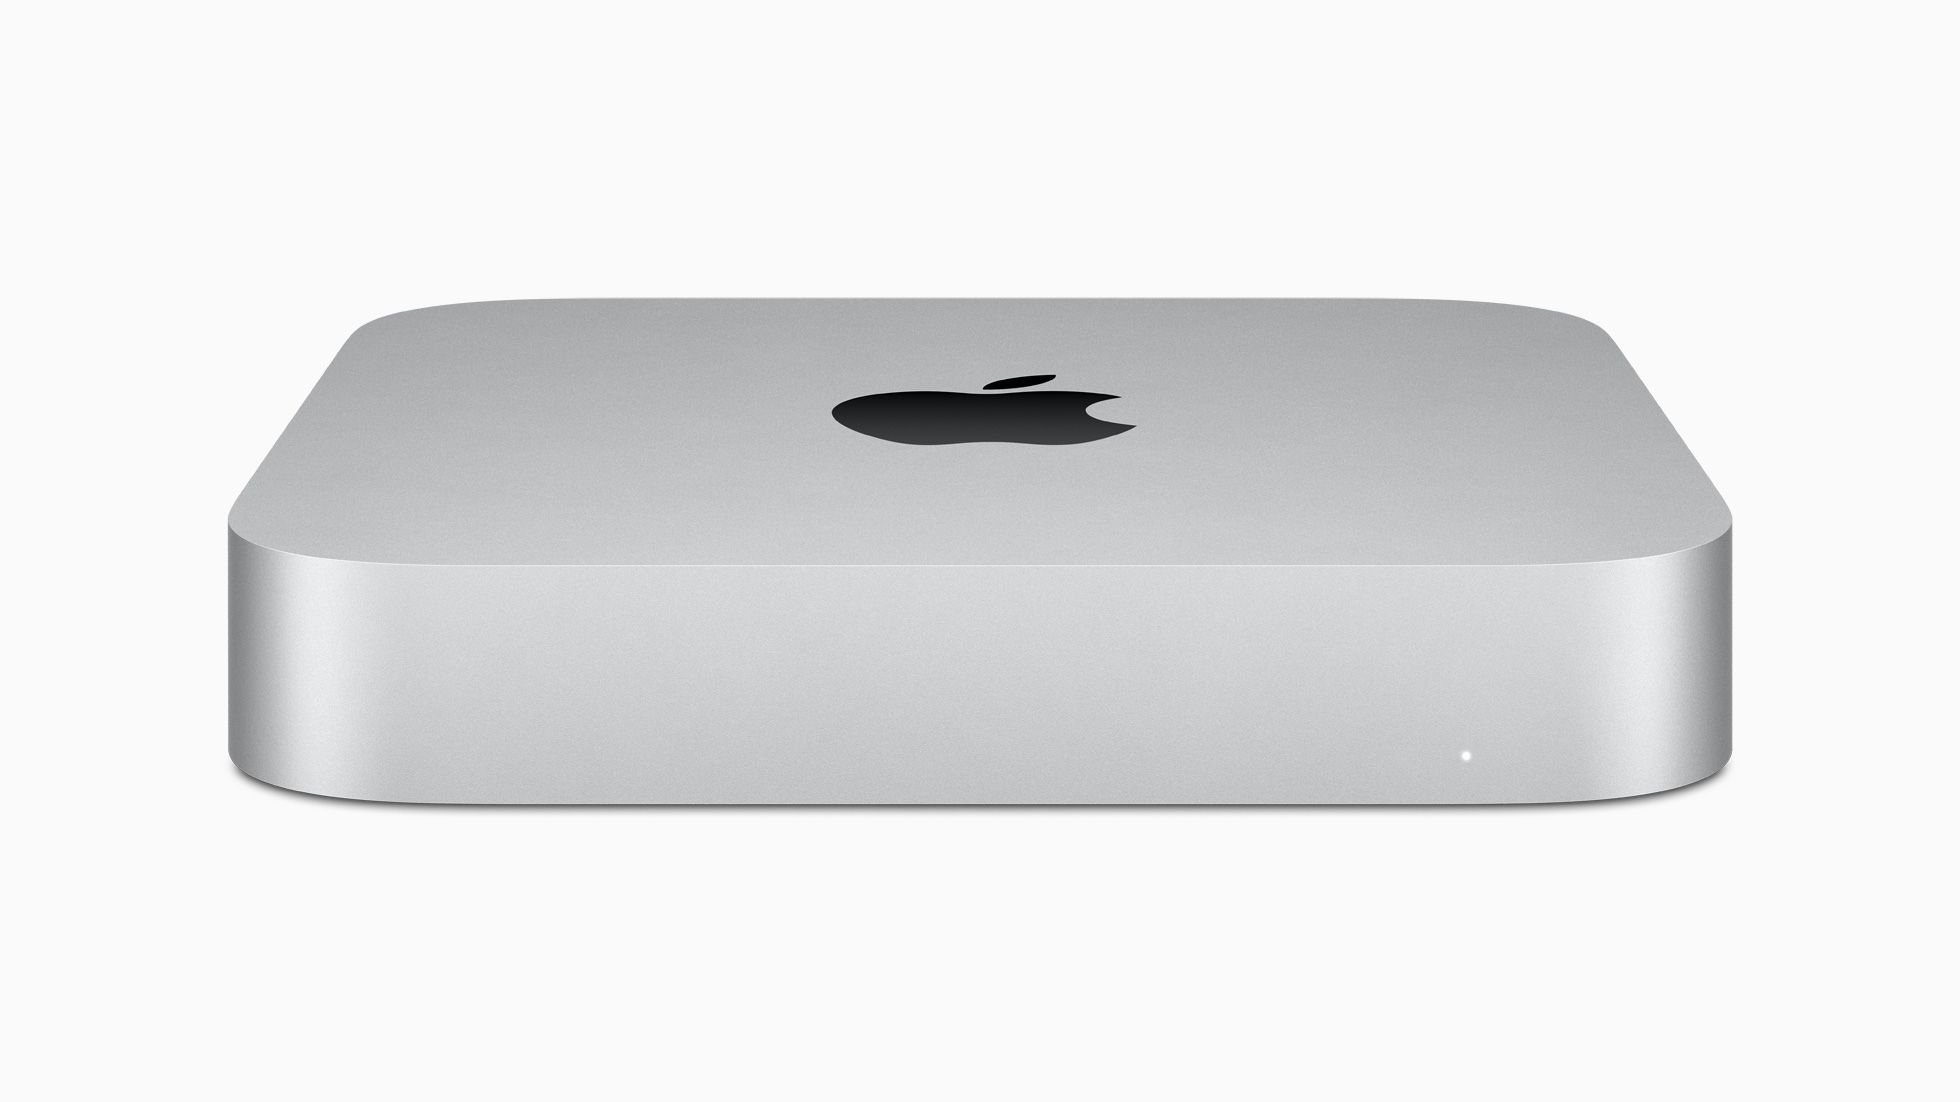 Apple Mac mini in silver on a white background